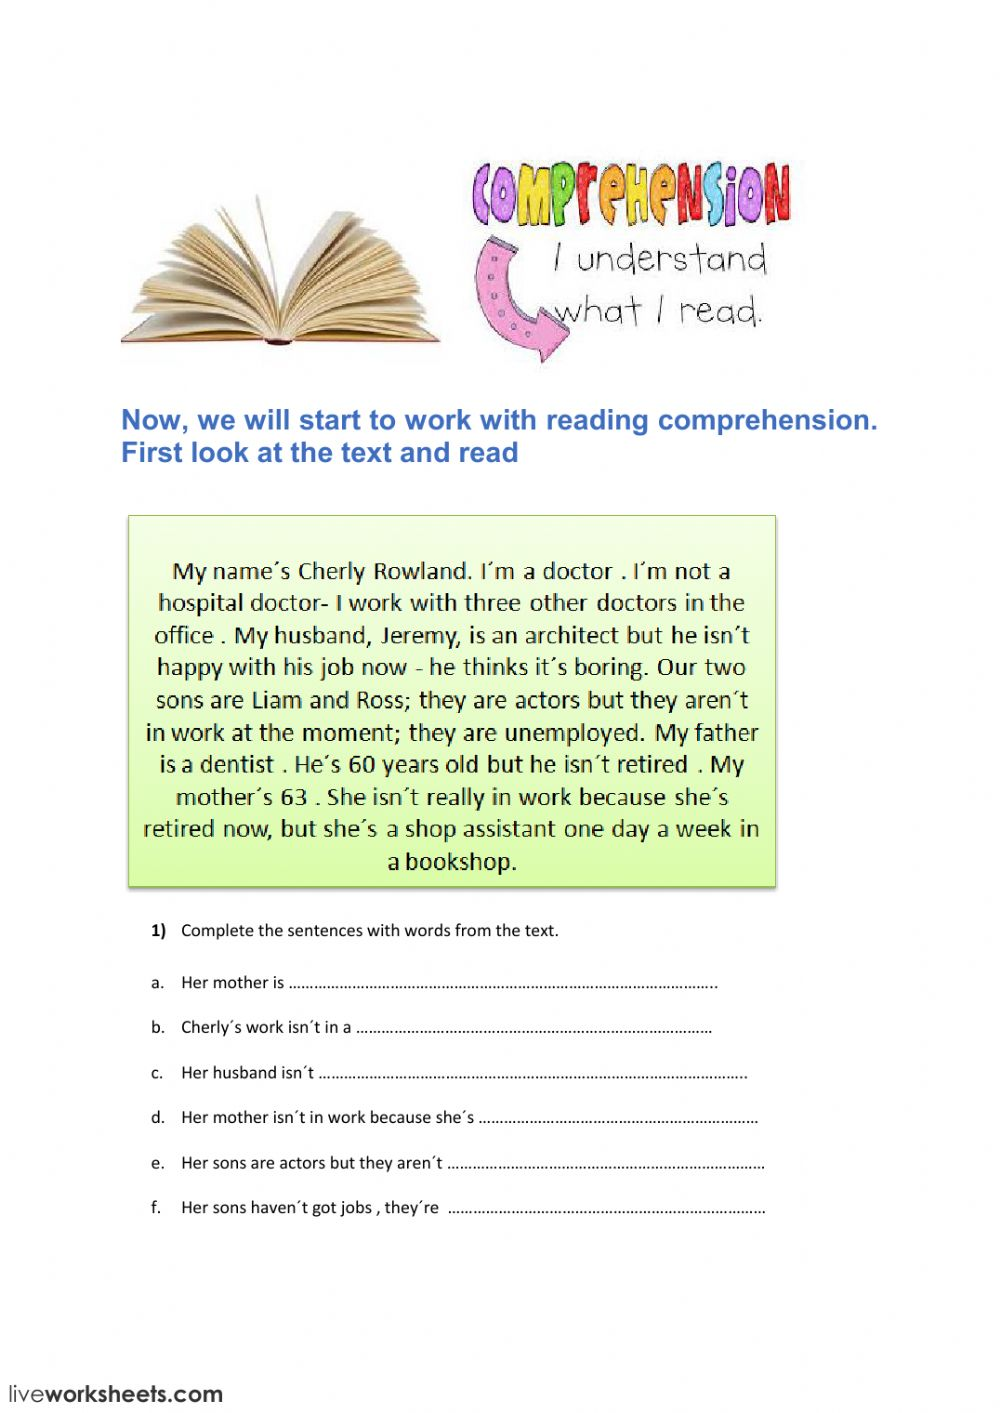 Reading elementary 1: Reading comprehension exercise